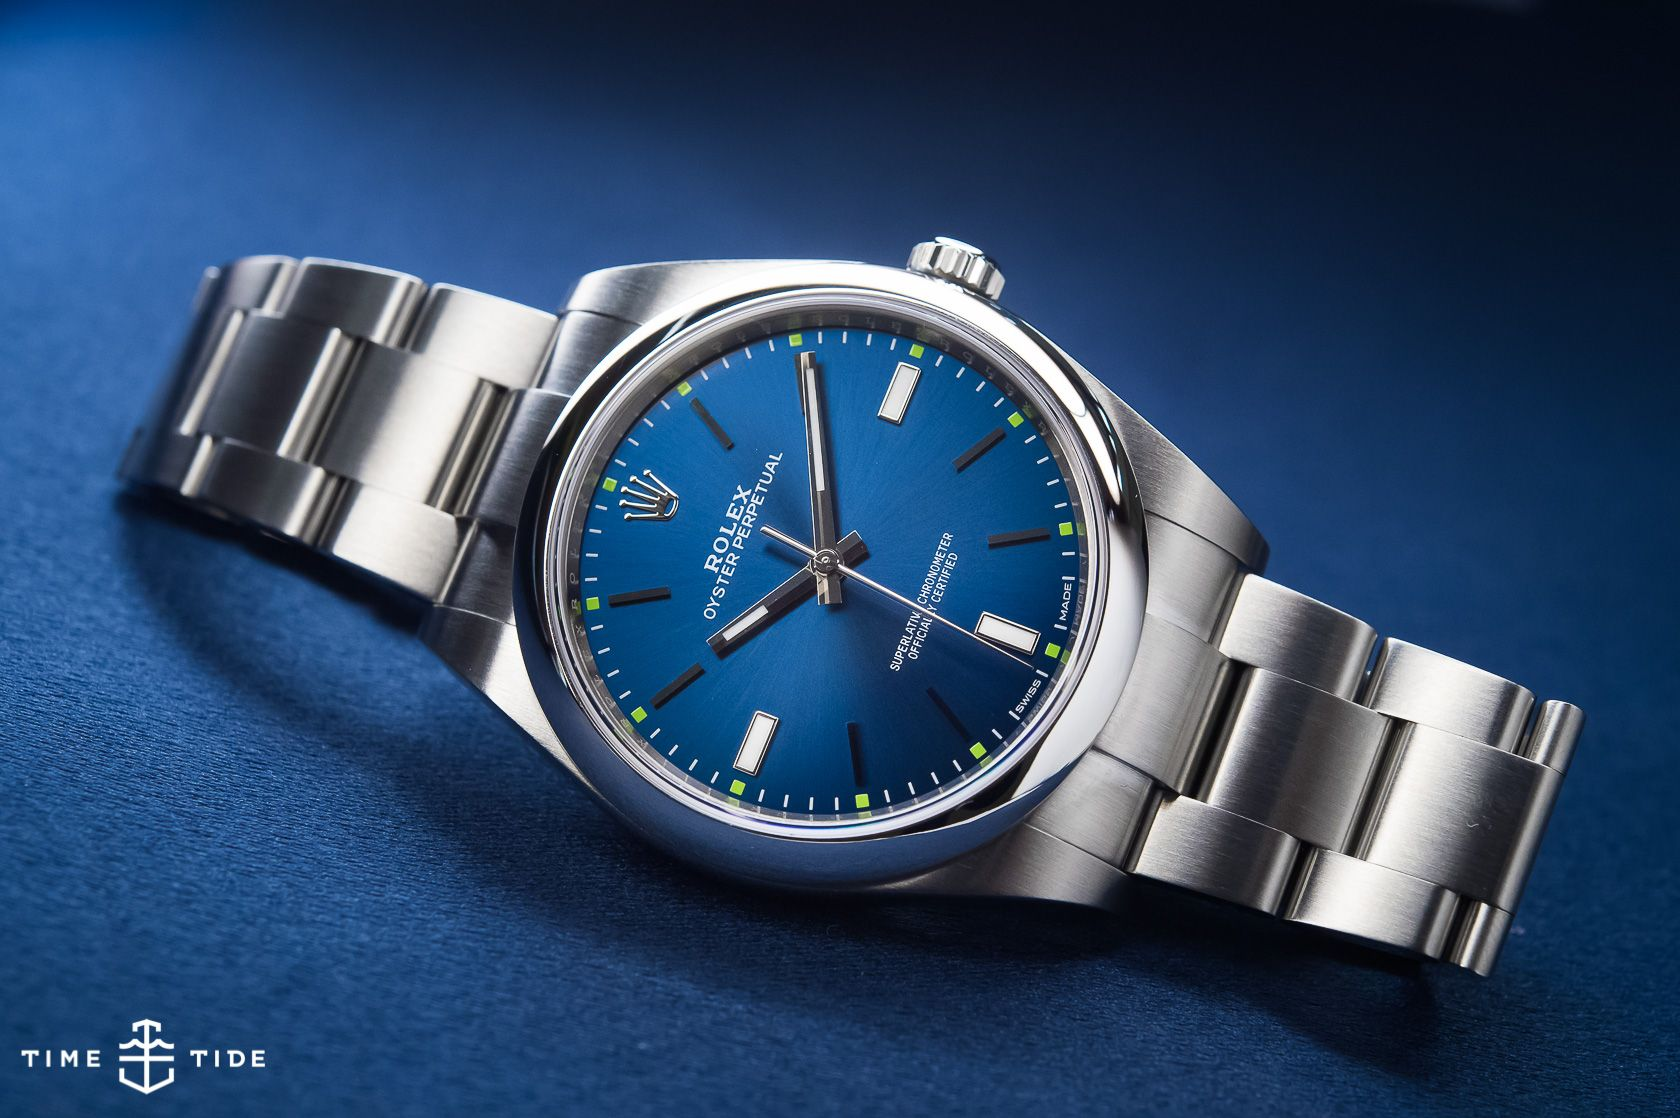 d8e77dbf1a52 IN-DEPTH  The Rolex Oyster Perpetual 39 (ref. 114300) - Time and Tide  Watches